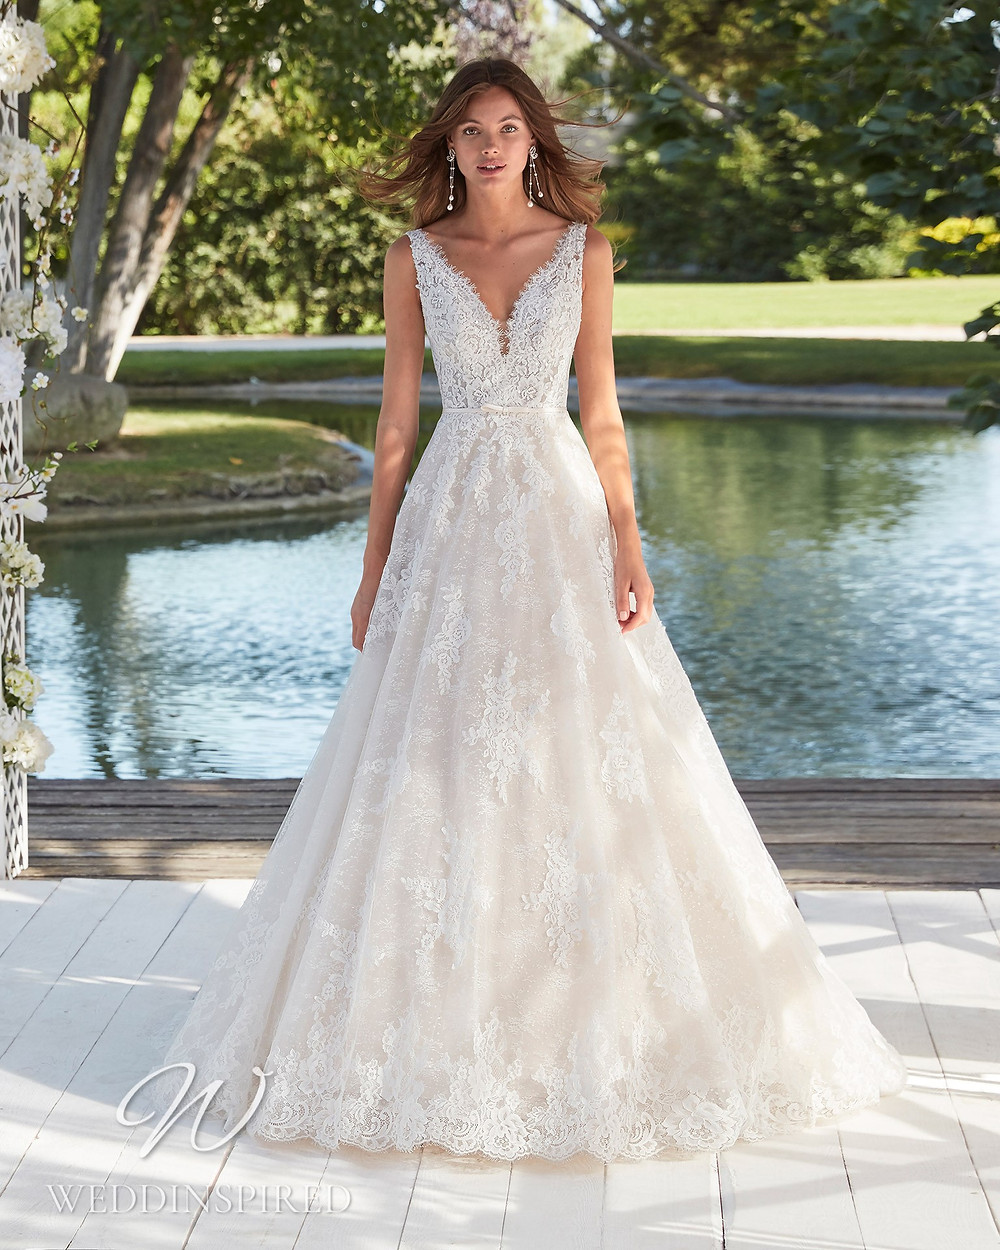 An Aire Barcelona 2021 lace A-line wedding dress with a v neck